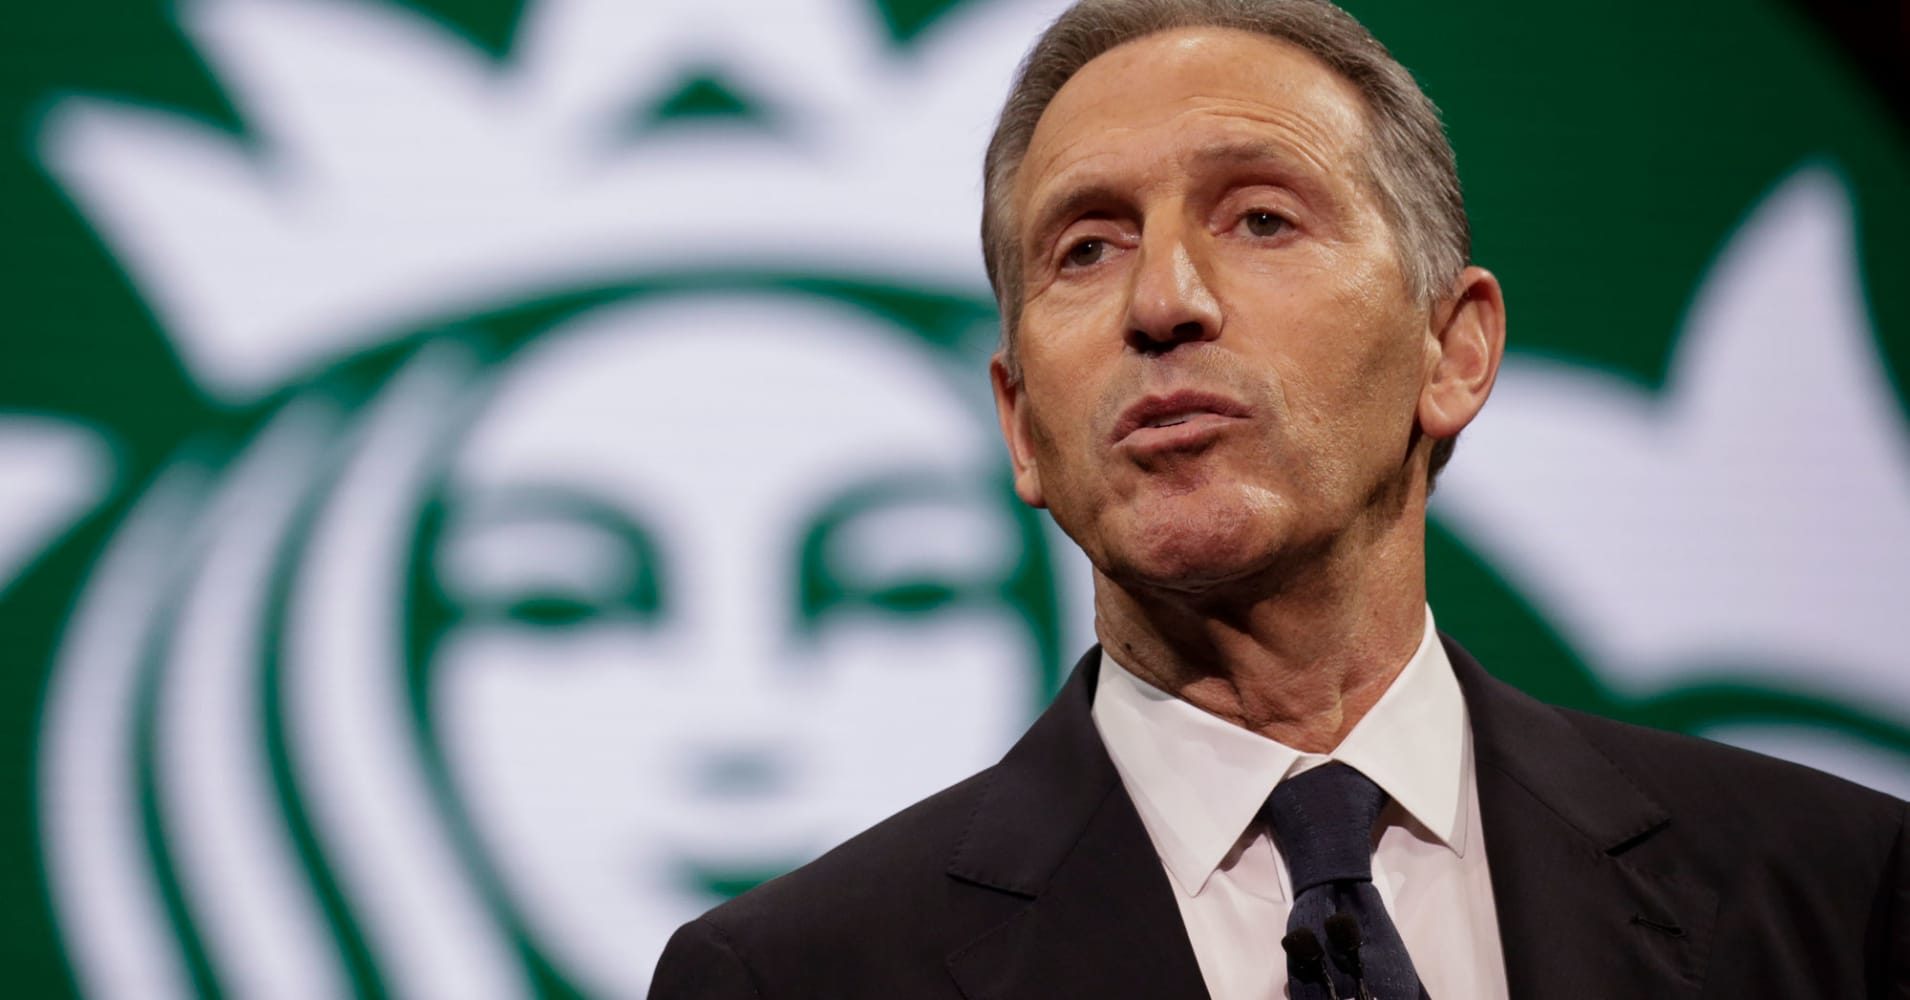 Starbucks Chairman and former CEO Howard Schultz